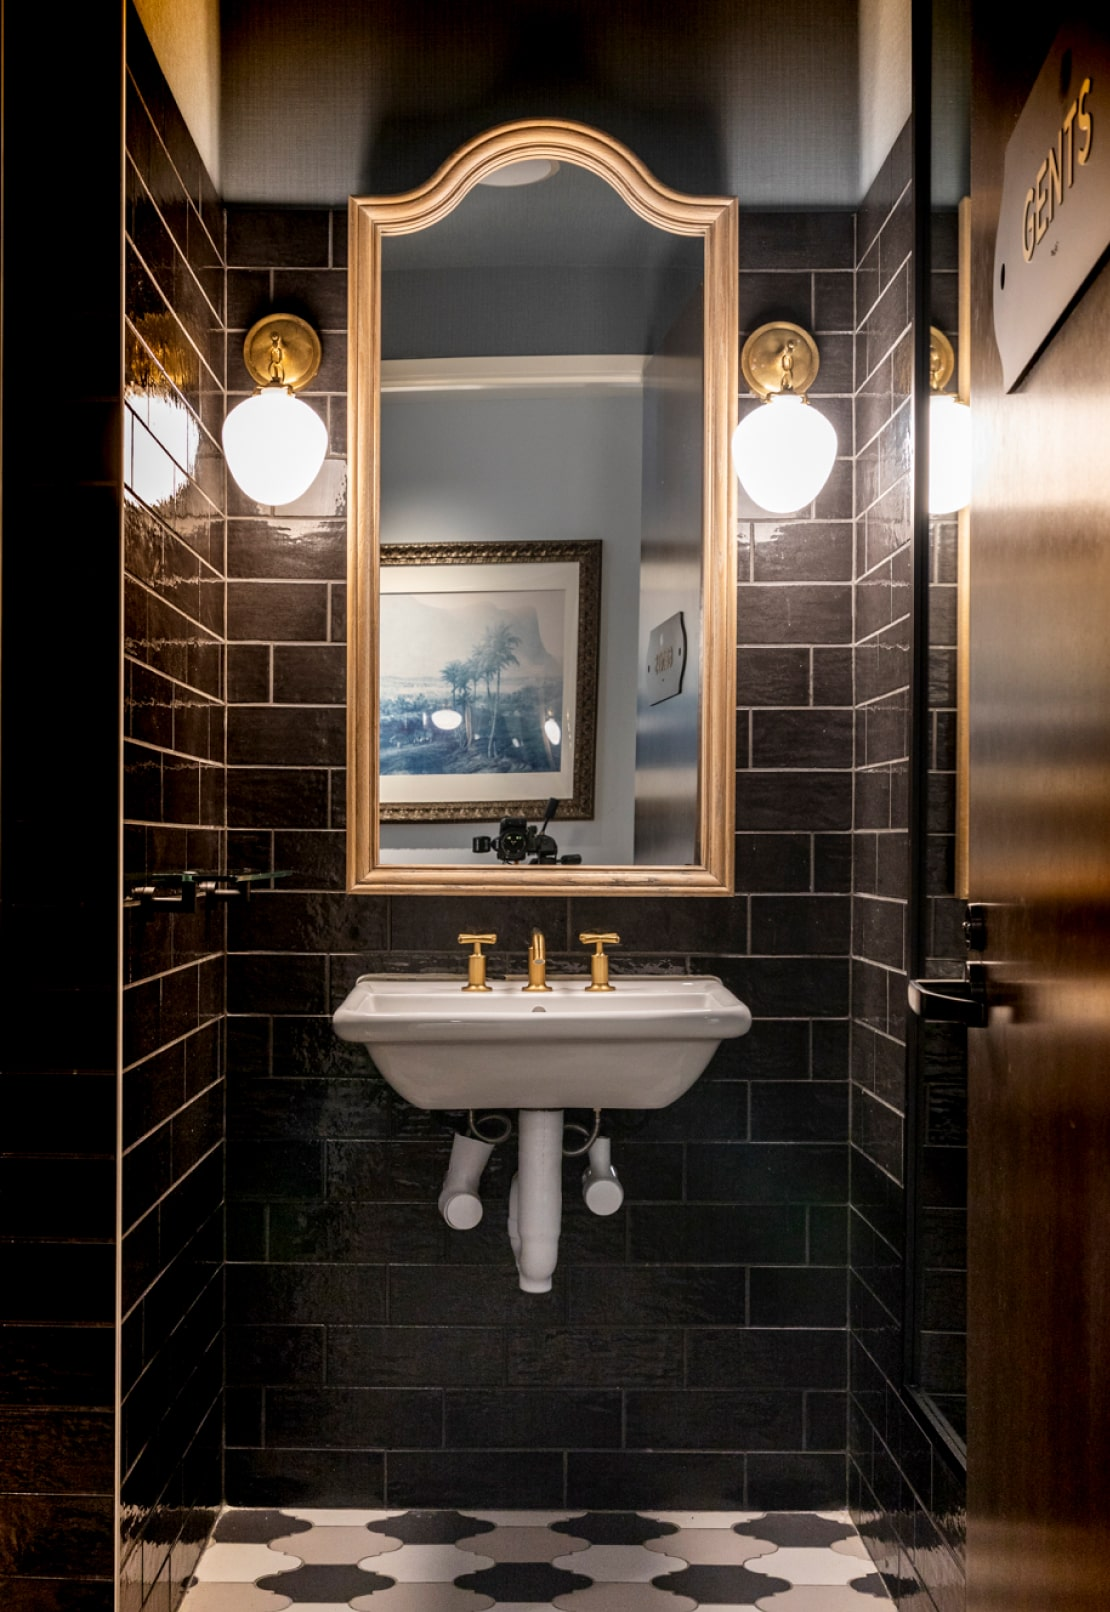 Bathroom interior design at the Atlanta Restaurant